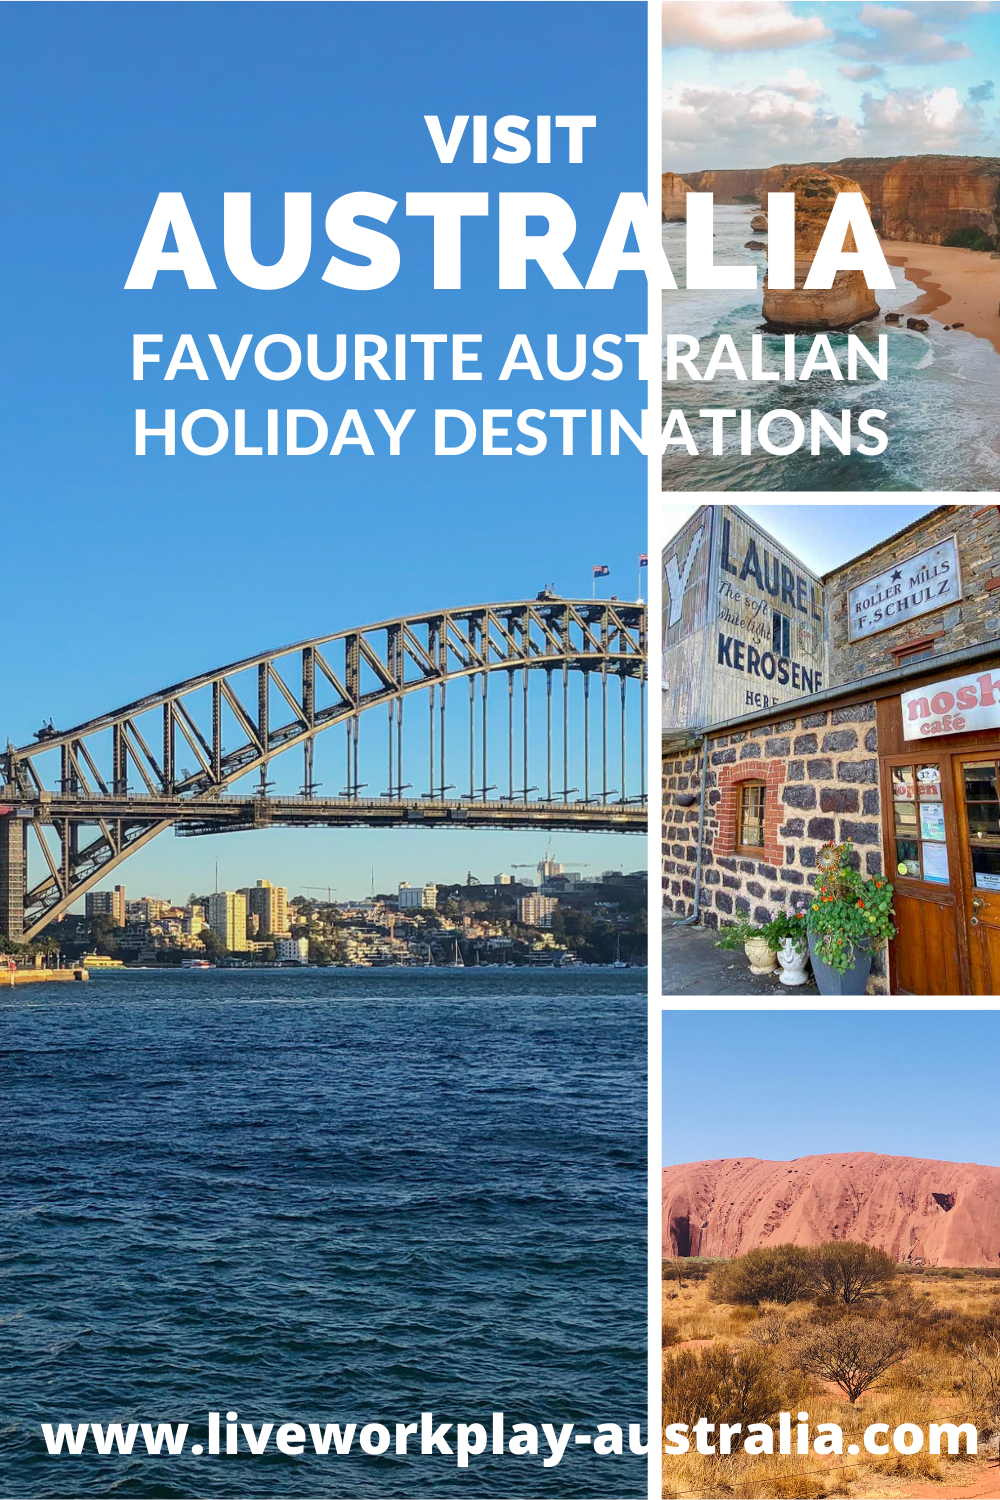 Australia Holiday Pin, Sydney Harbour, Ayers Rock Uluru, Great Ocean Road and Barossa Valley.